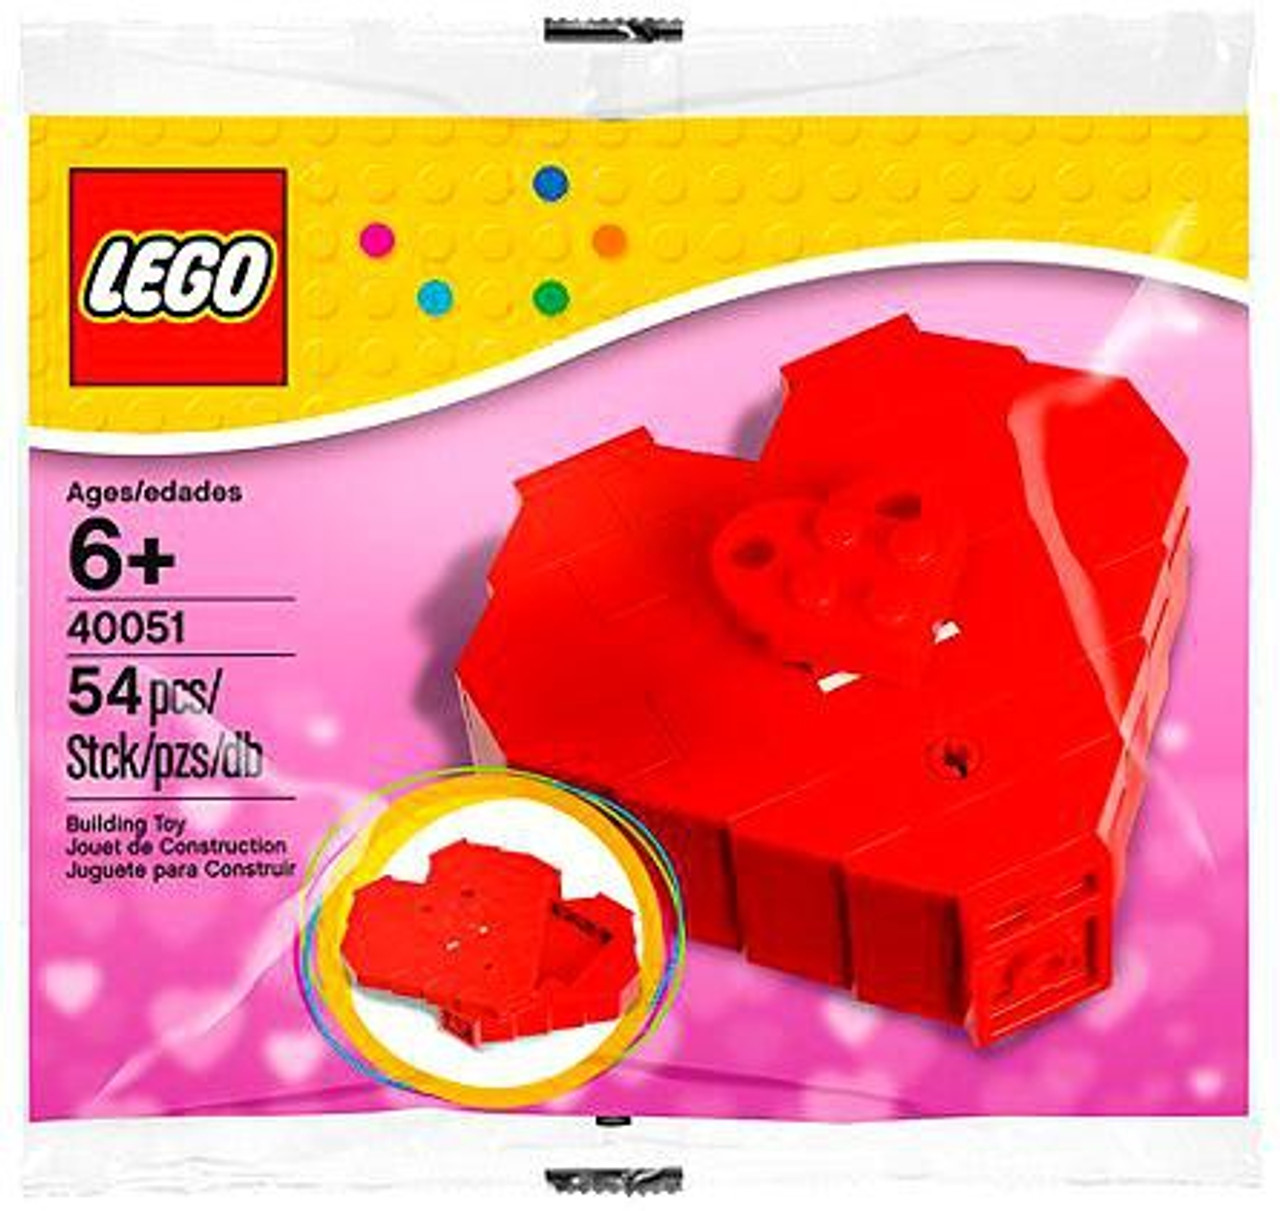 LEGO Valentine's Day Heart Box Mini Set #40051 [Bagged]